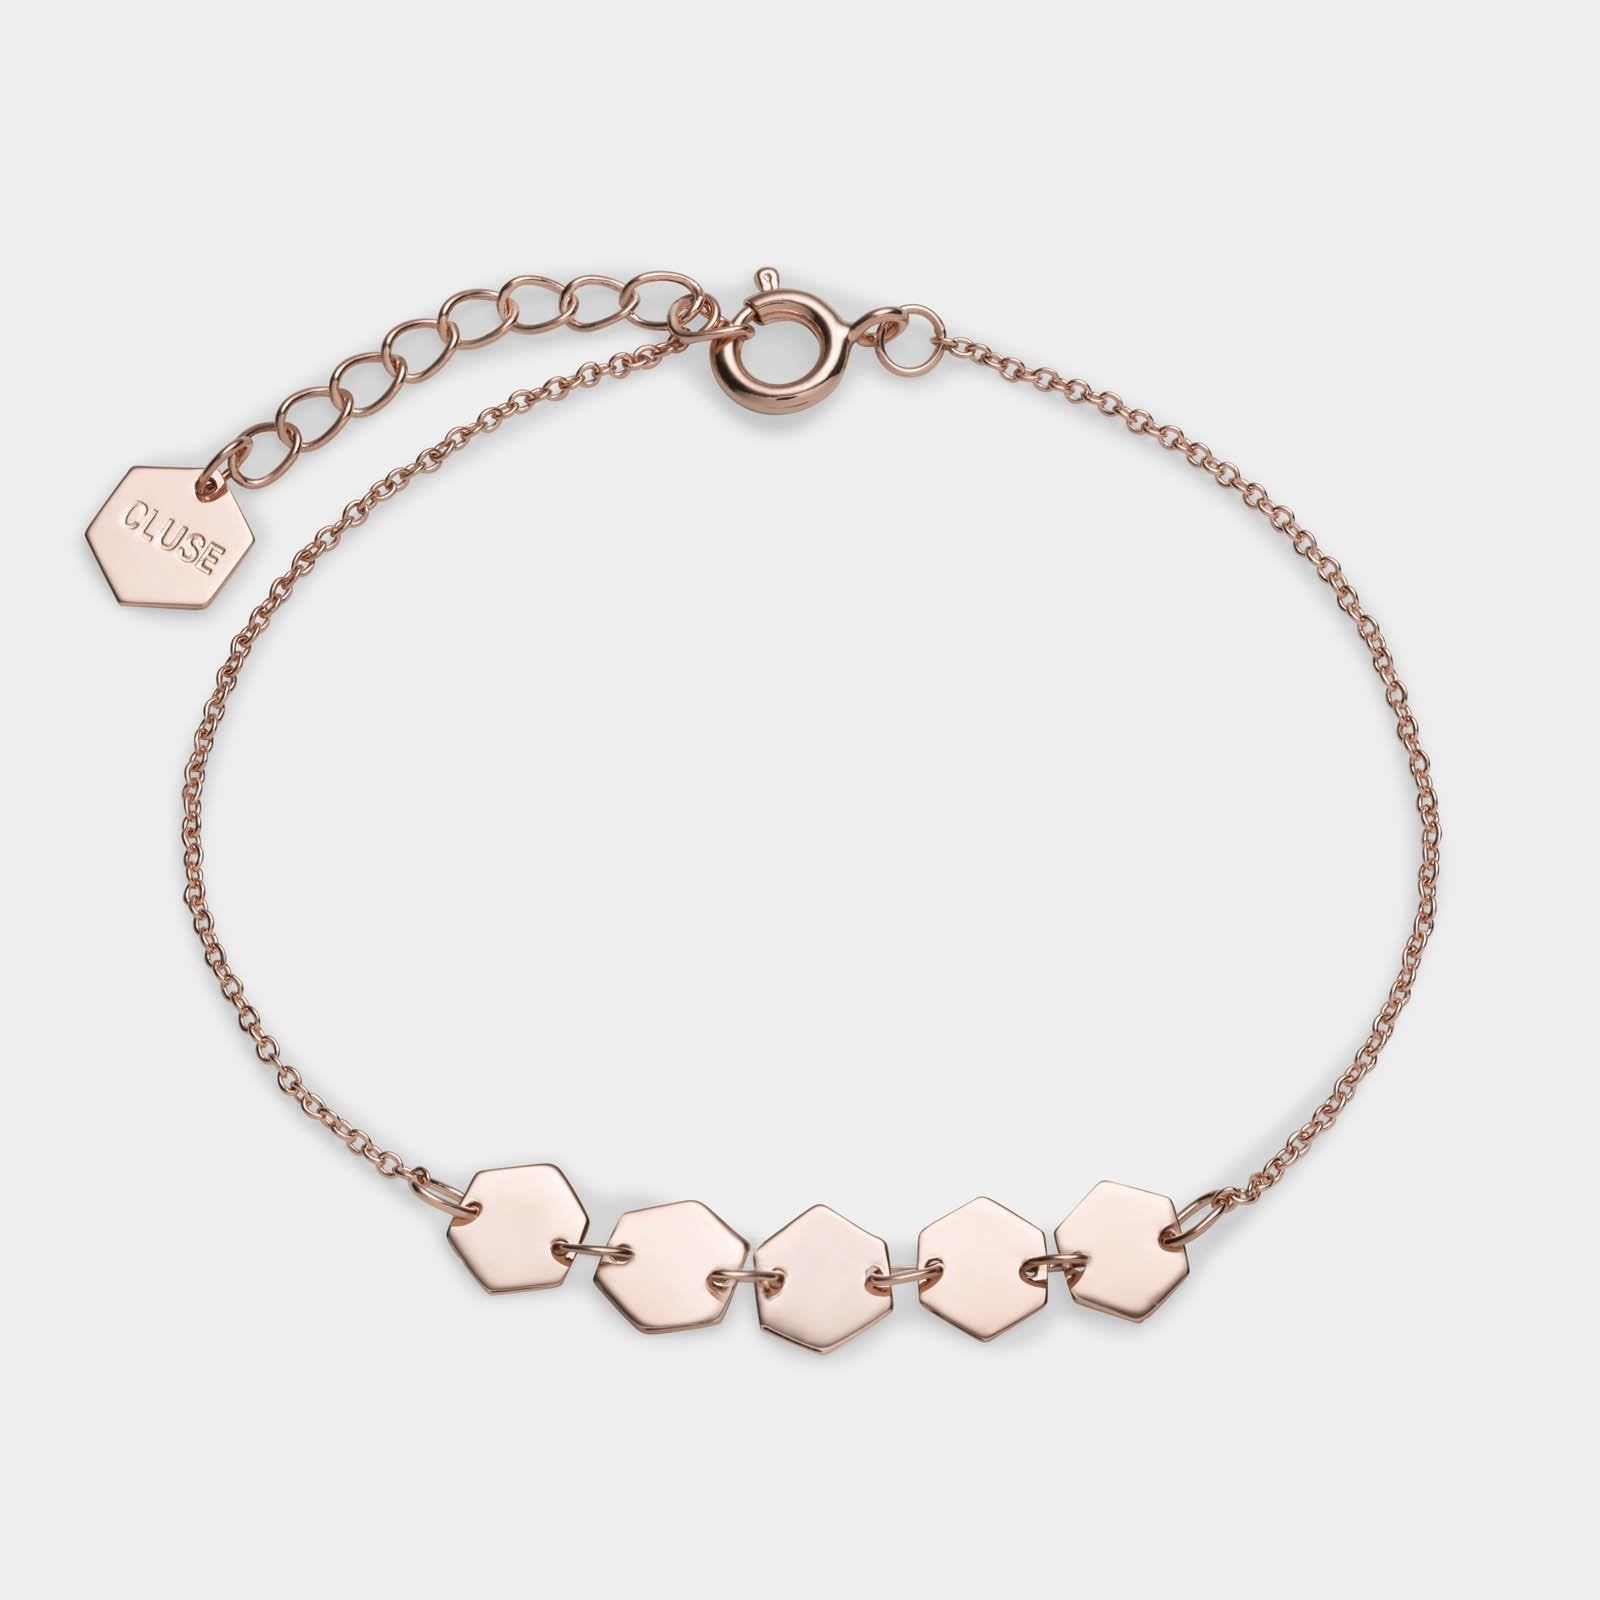 CLUSE Essentielle Rose Gold Hexagons Chain Bracelet CLJ10007 - Bracelet